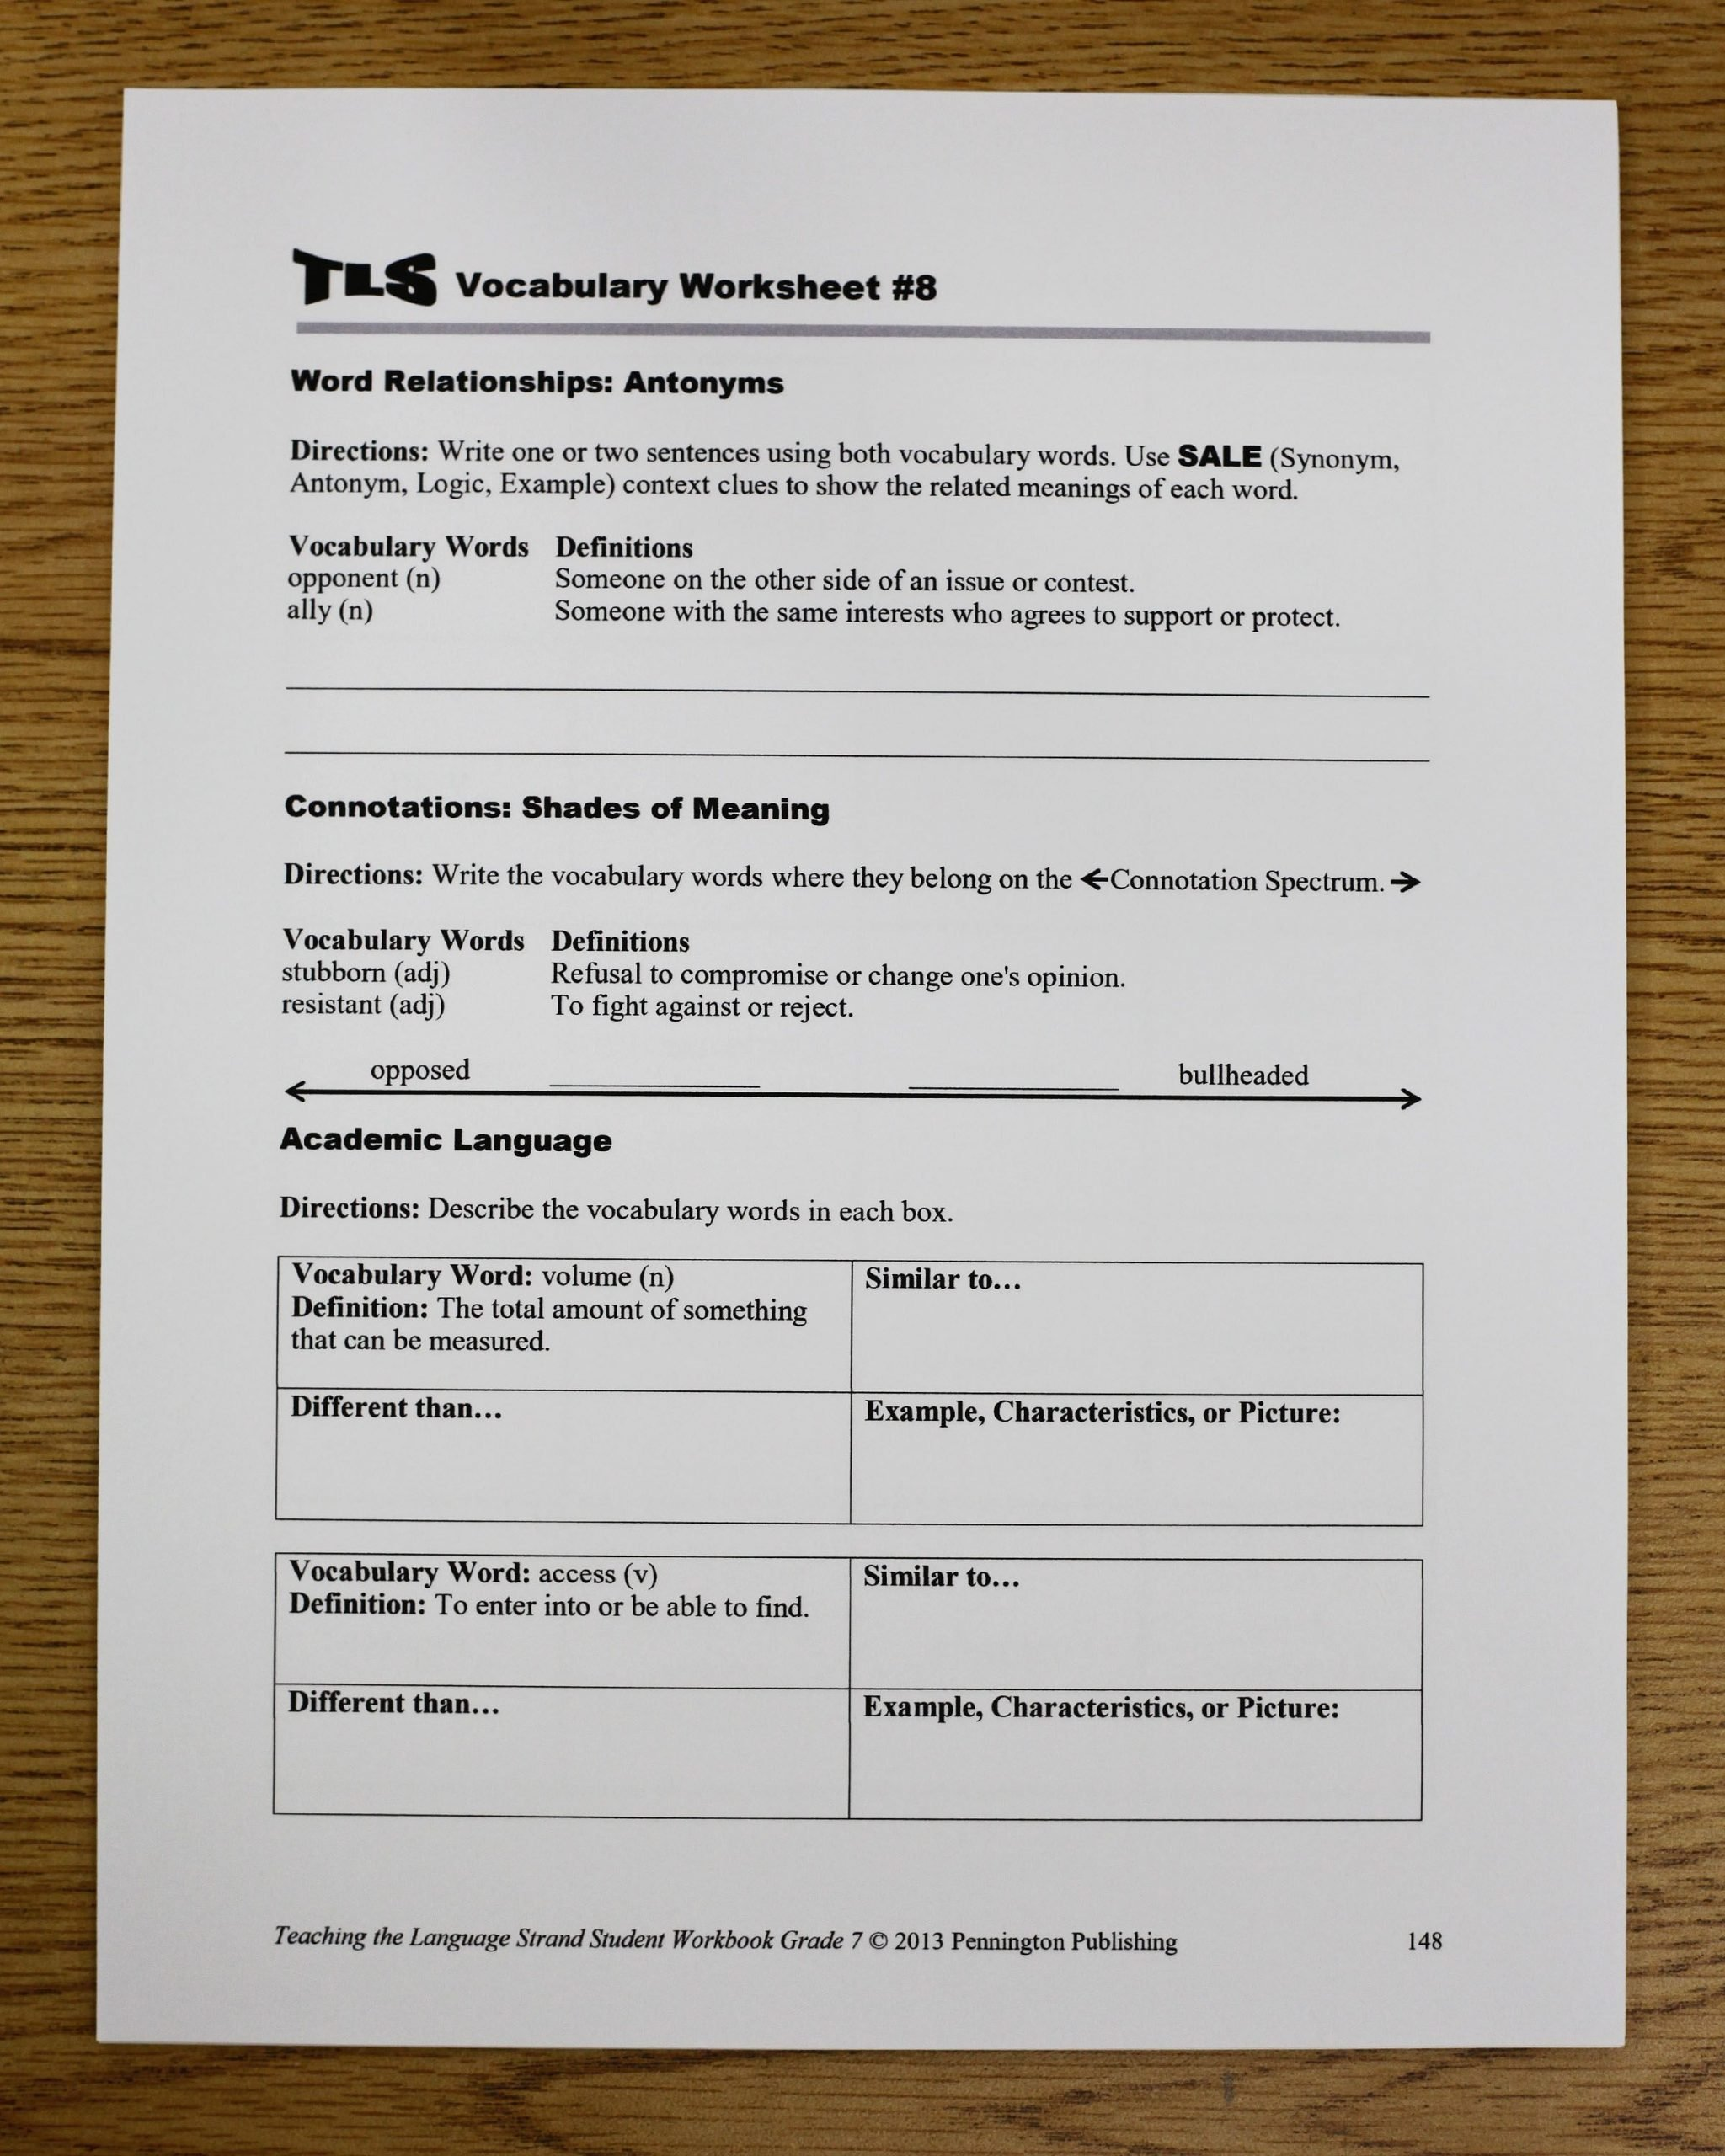 Semantic Relationships Worksheets the Mon Core Vocabulary toolkits Grades 4 5 6 7 and 8